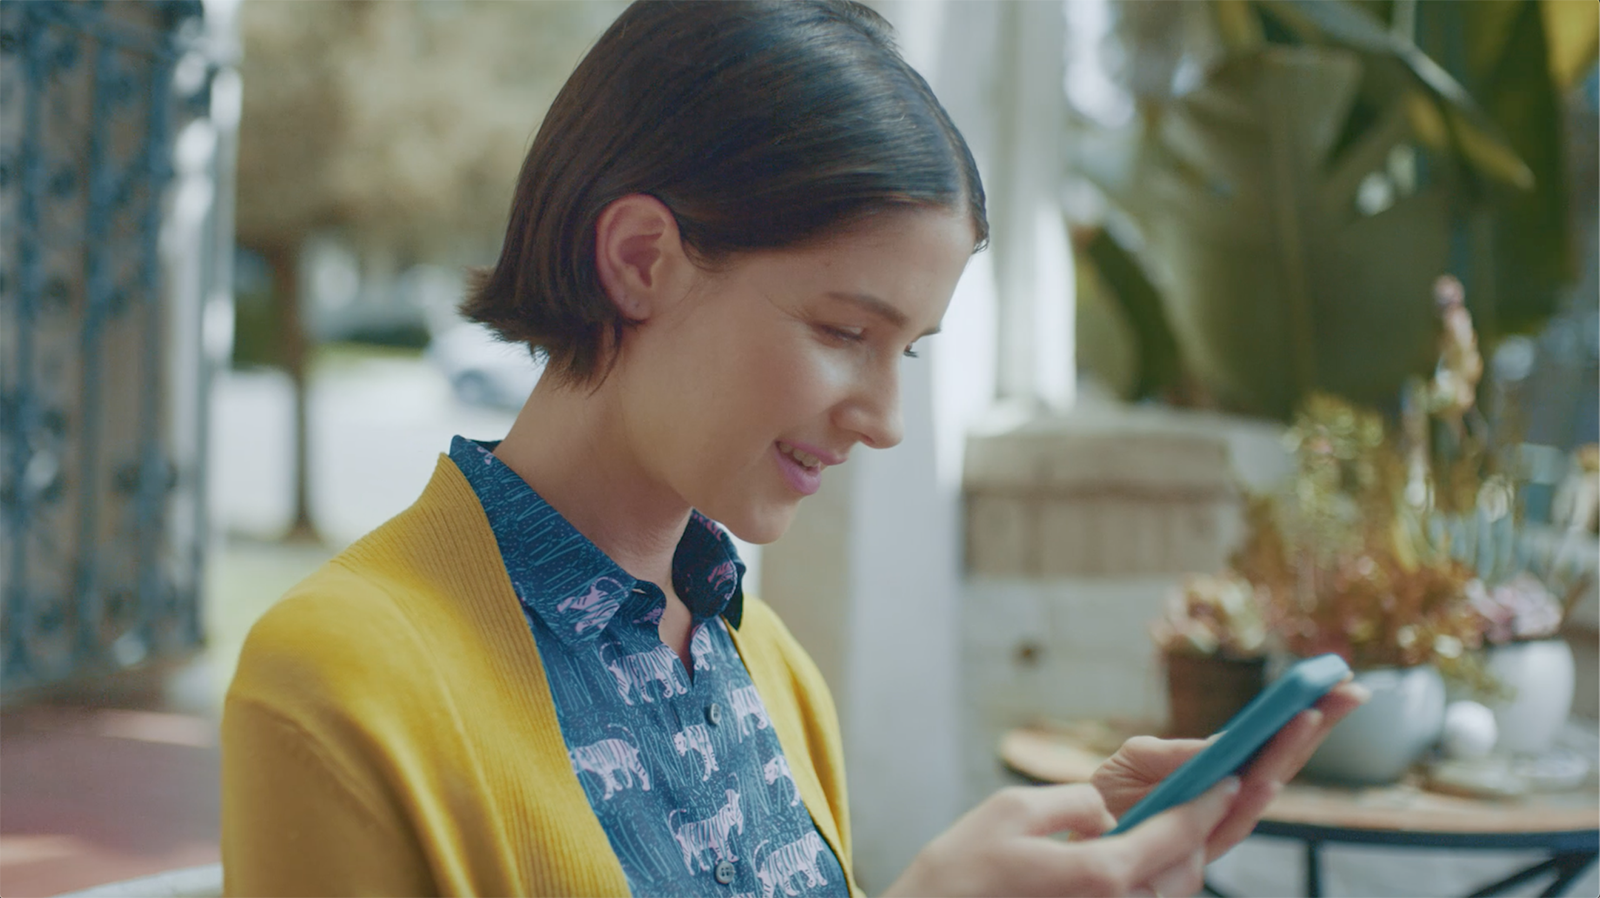 A woman looking at her mobile phone and smiling.